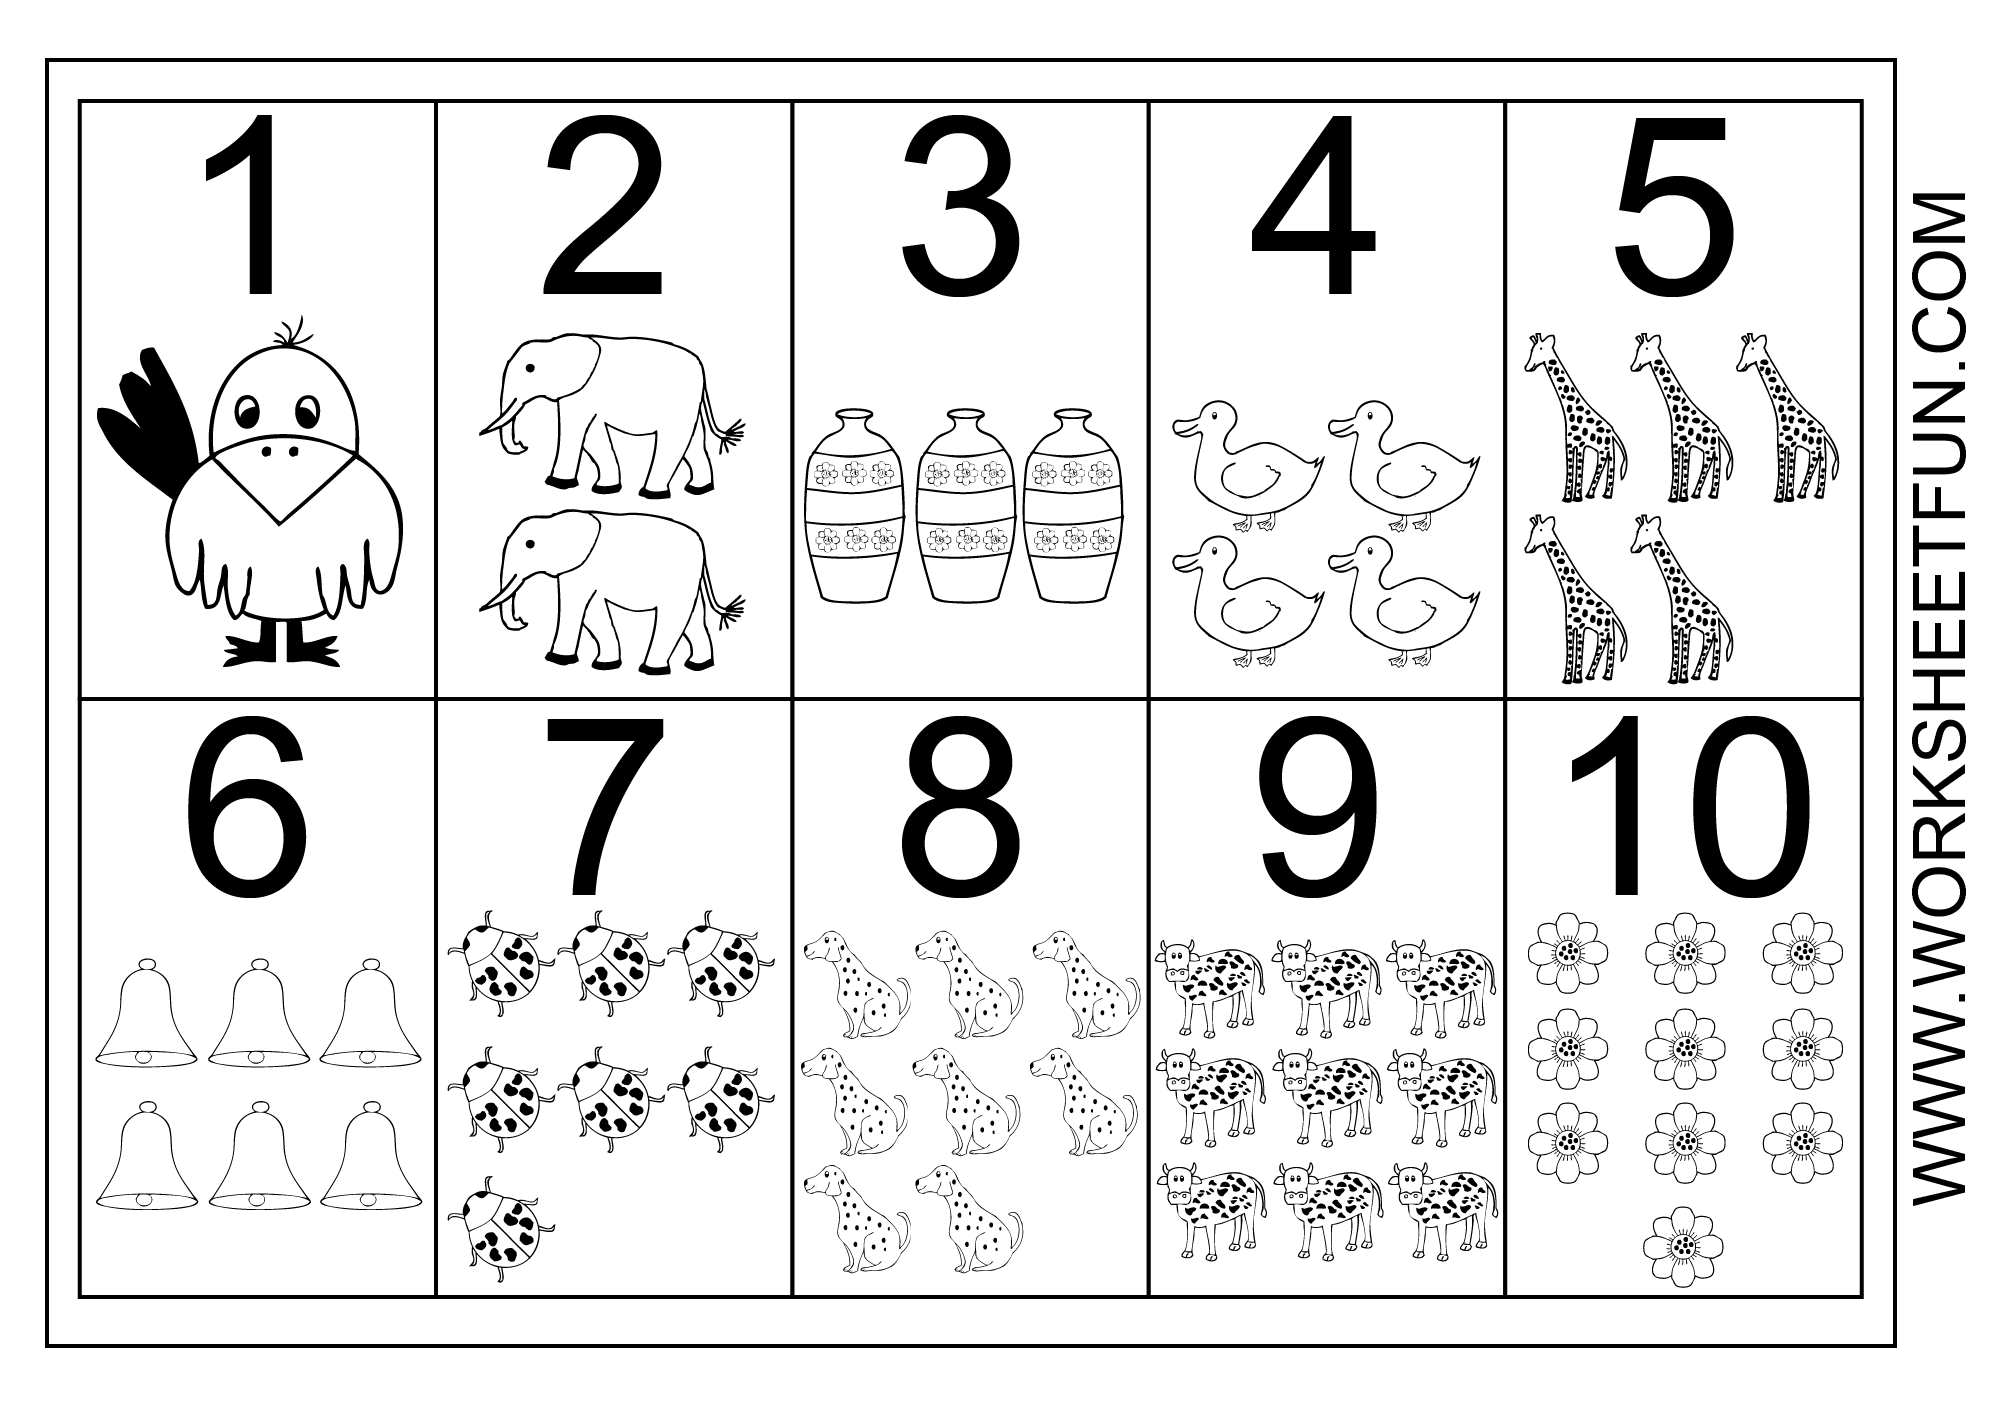 Picture Number Chart 1-10